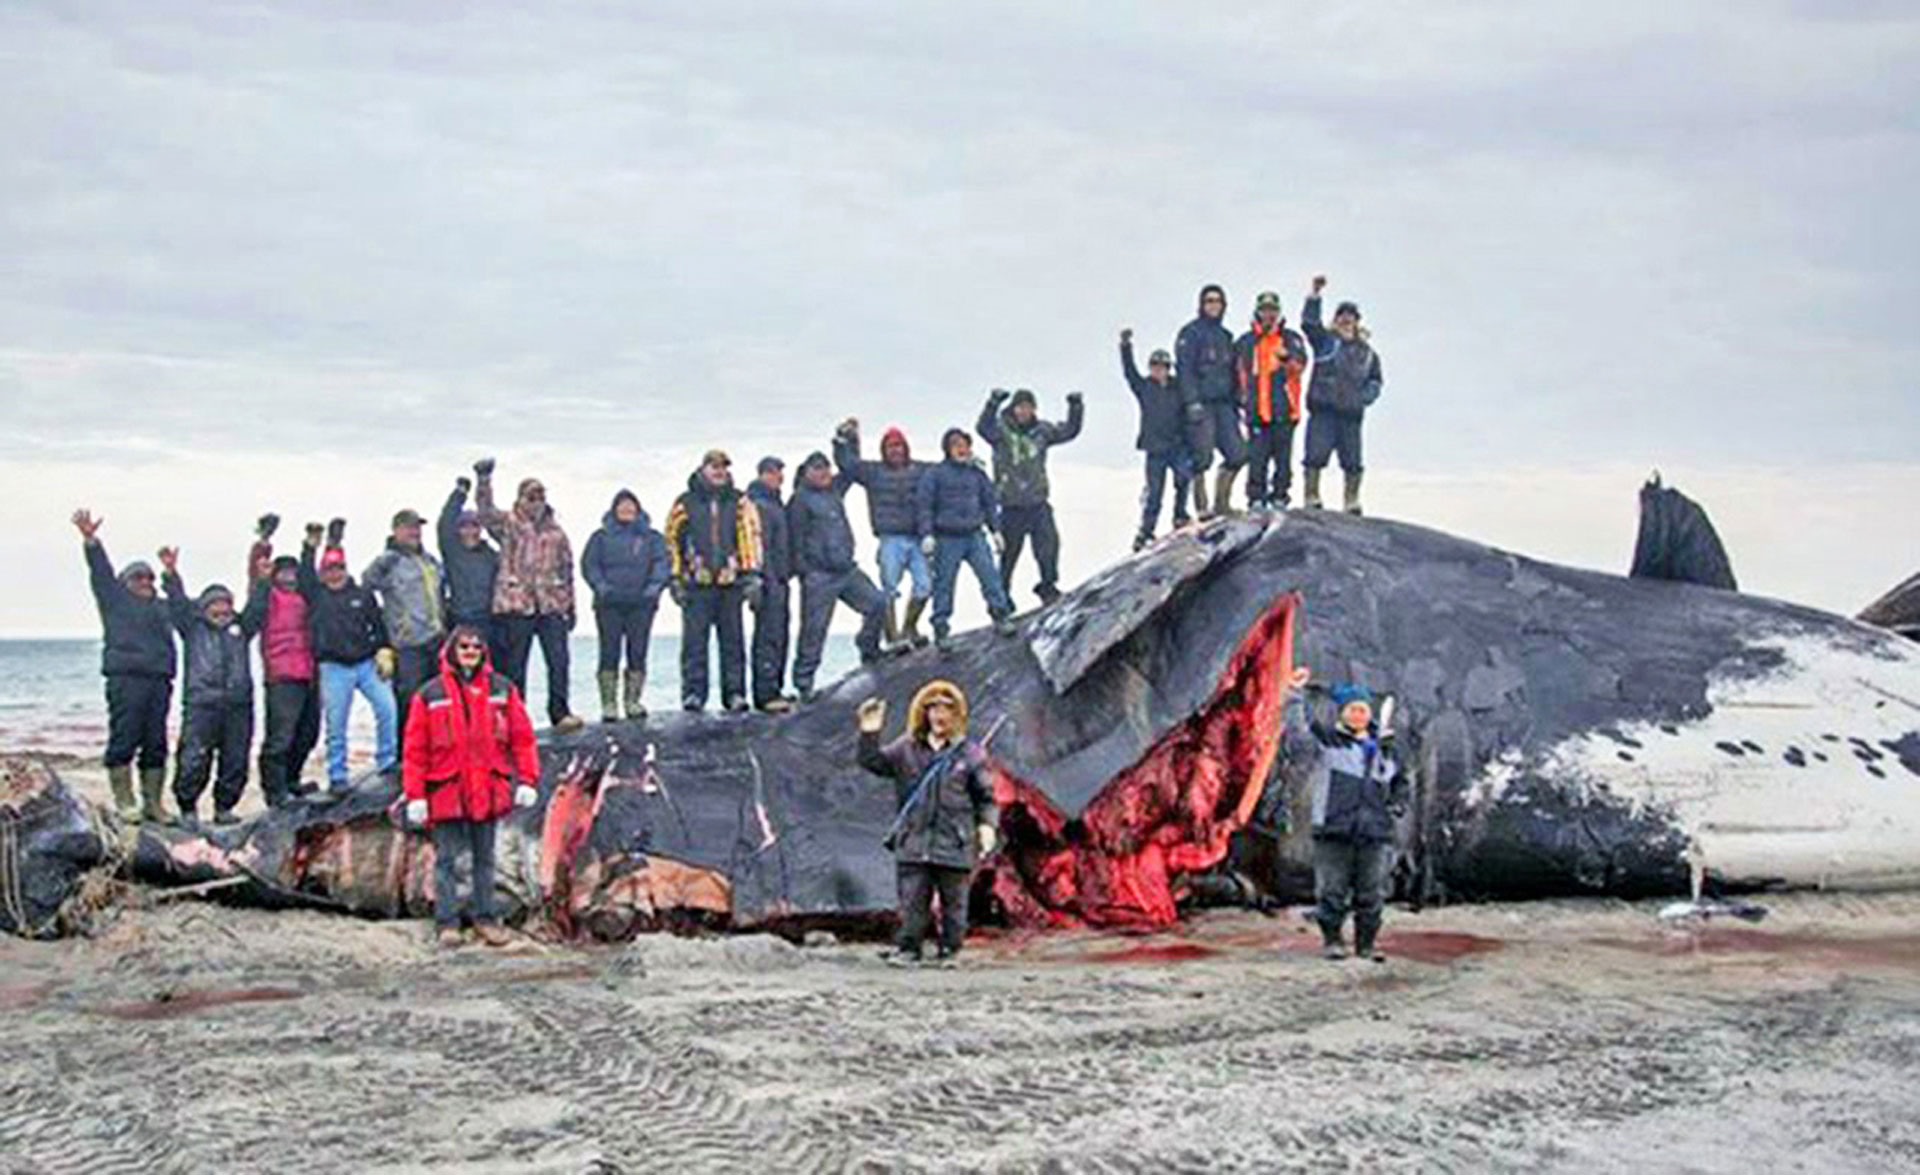 August 2014 - Clyde River, Nunavut (Canada) celebrates the harvest of a bowhead whale. The pregnant whale took almost two painful hours to die. Photo: Niore Iqalukjuak / Screenshot - http://bit.ly/1vhZApZ